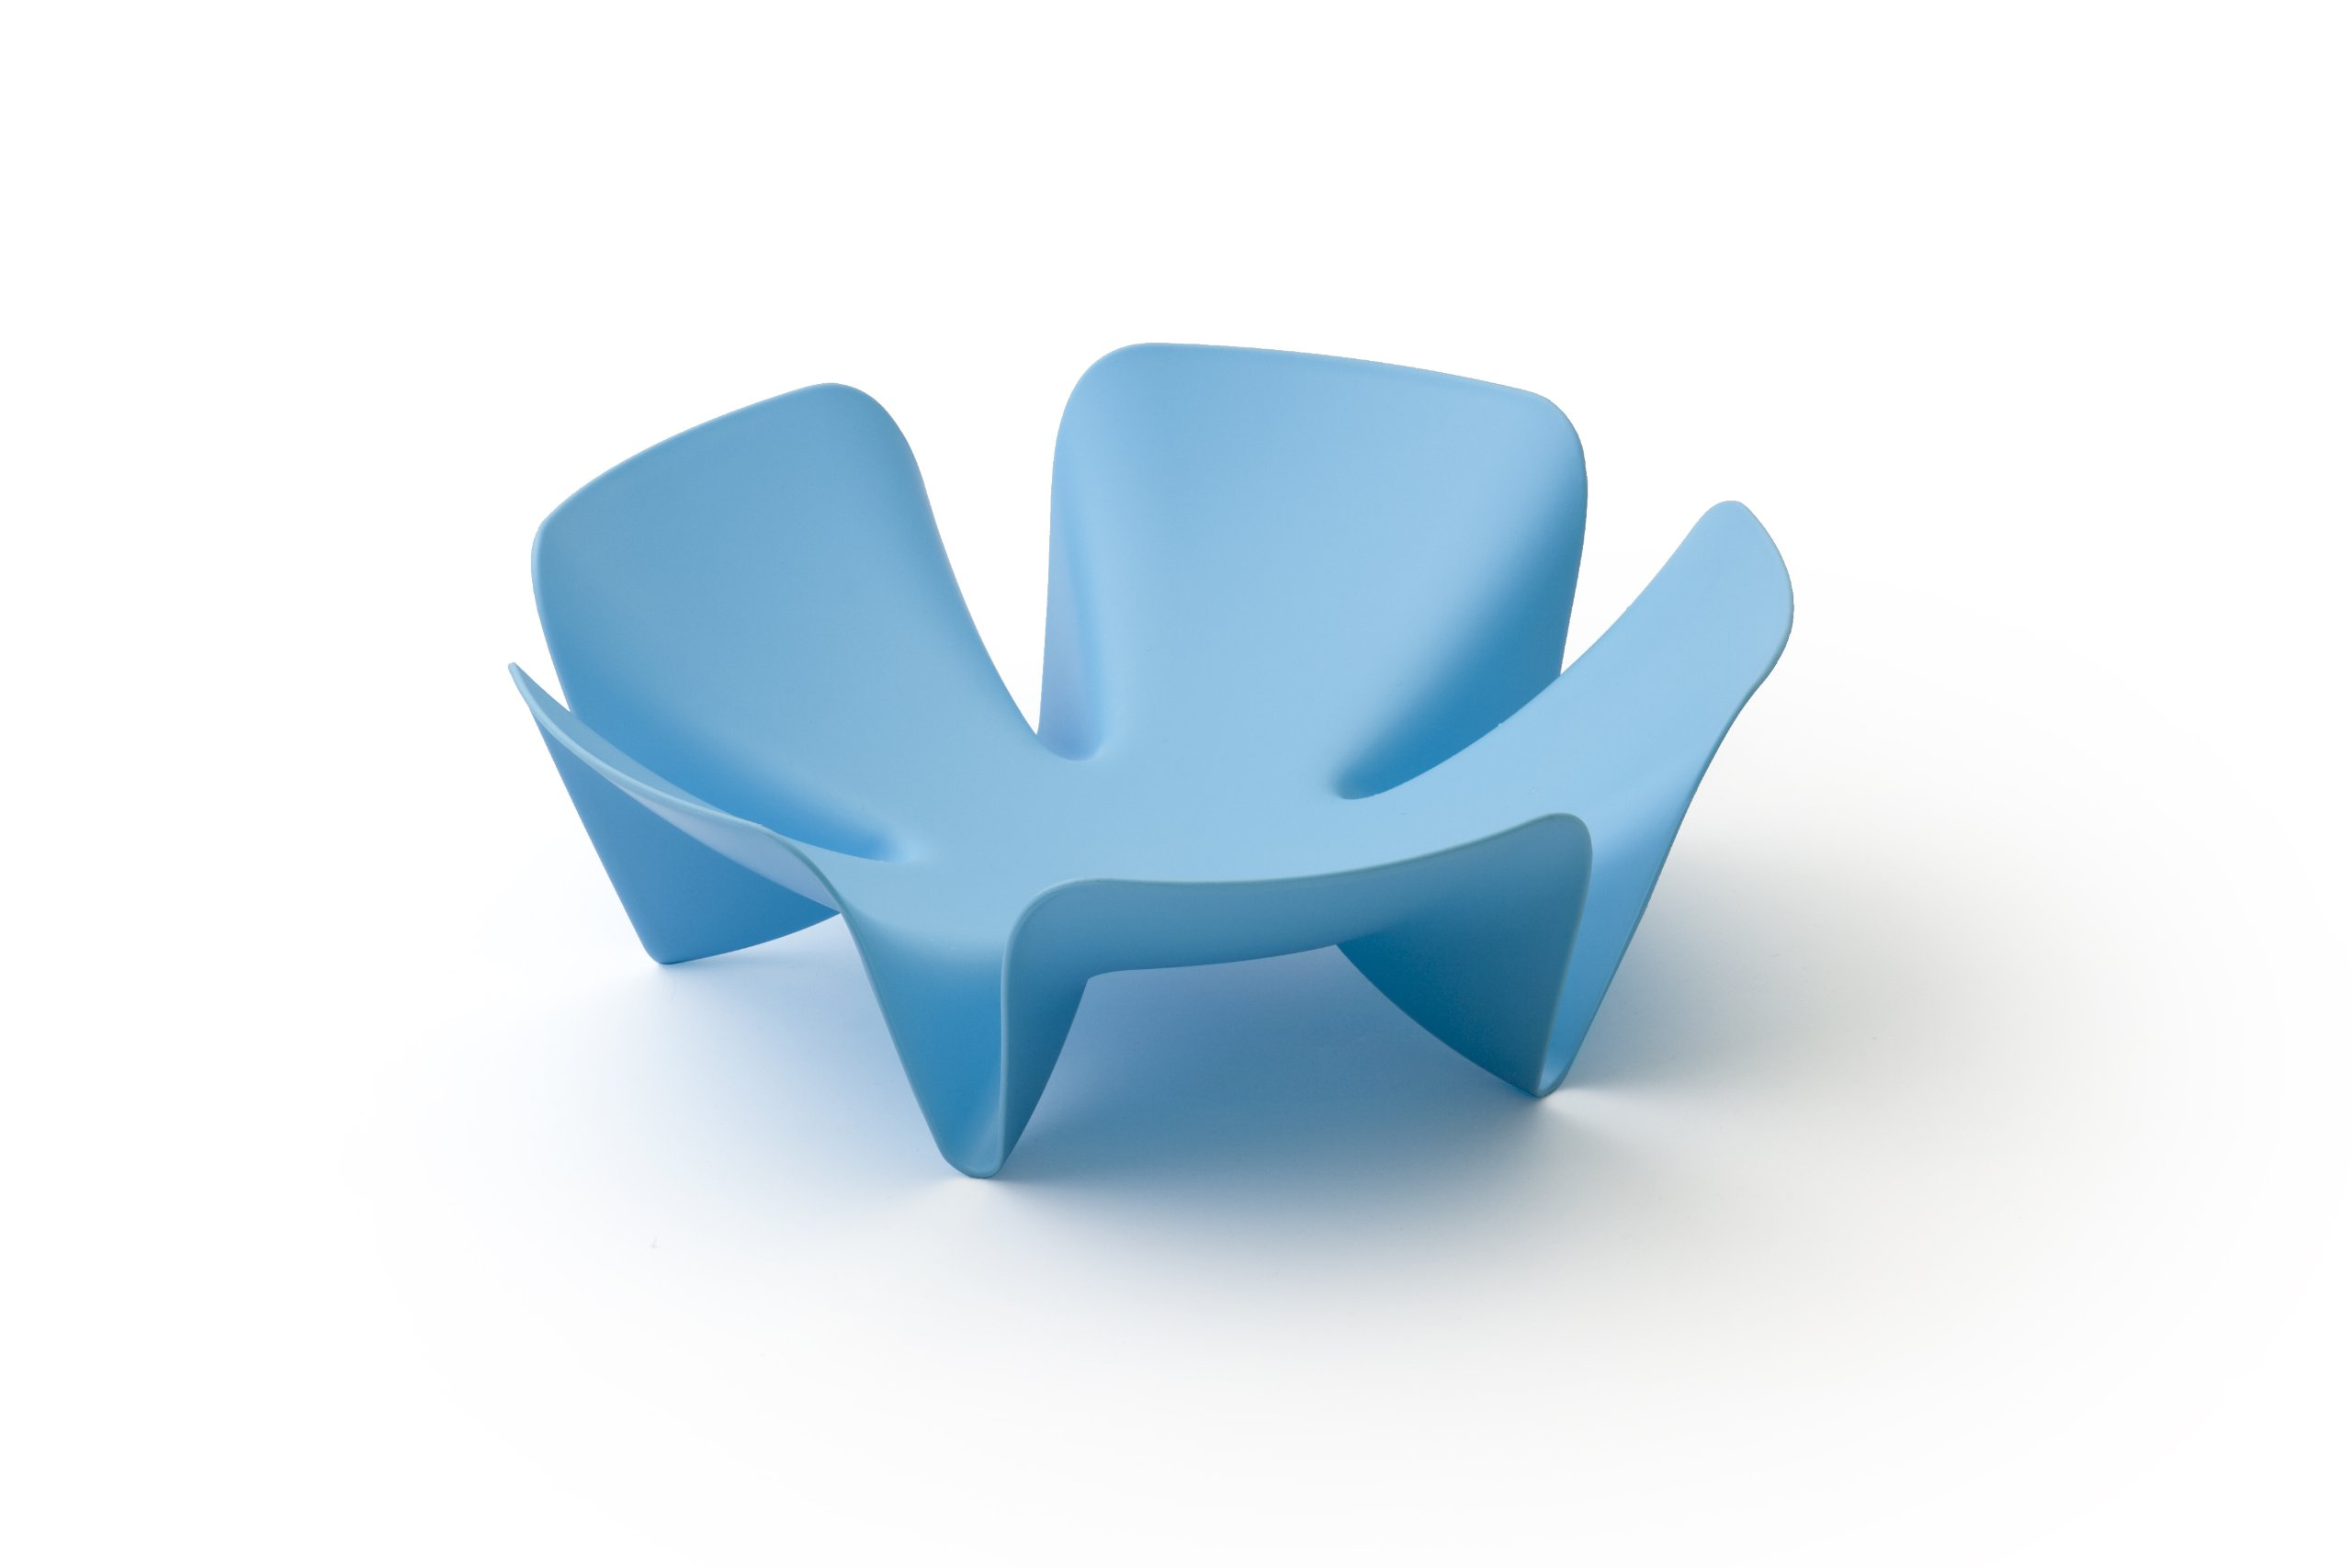 Qualy Flower Fruit Tray Blue by Qualy (Image #1)